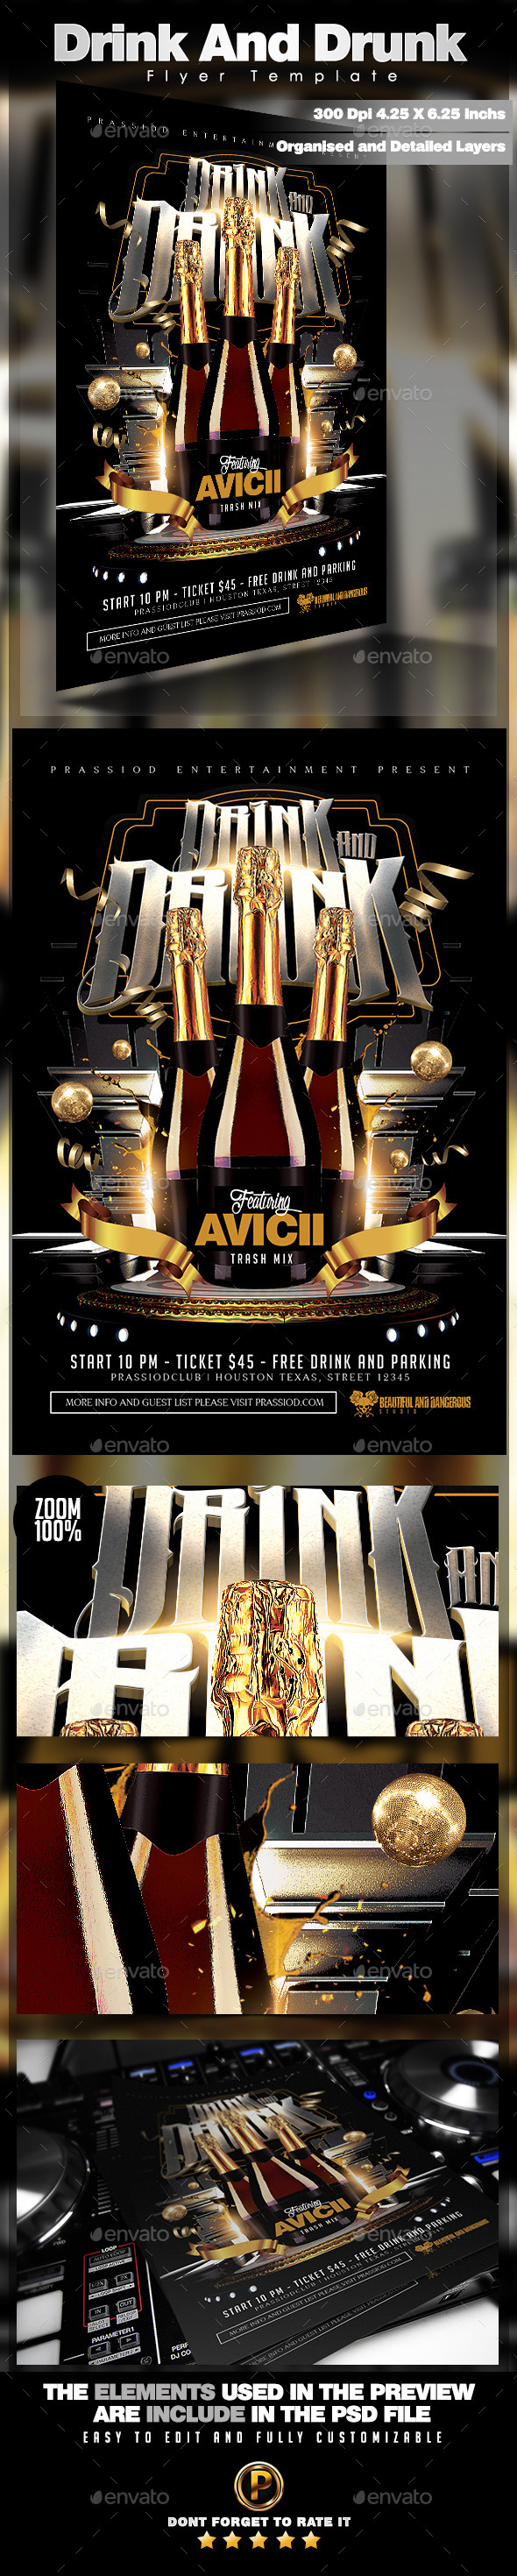 Drink And Drunk Flyer Template - Clubs & Parties Events